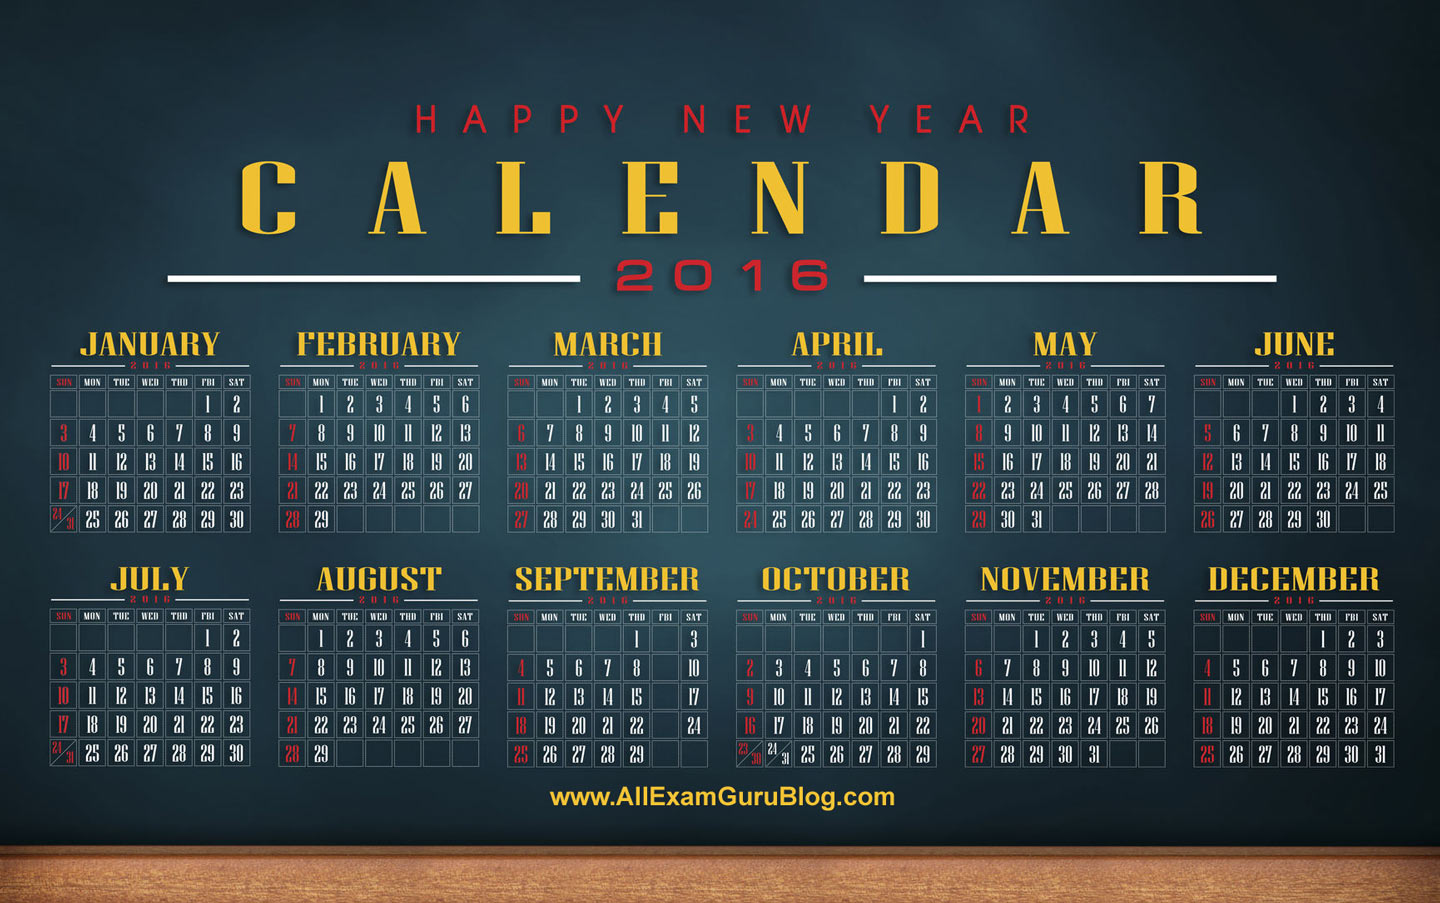 Desktop Calendar Wallpaper With Reminder : Free desktop calendar wallpaper wallpapersafari